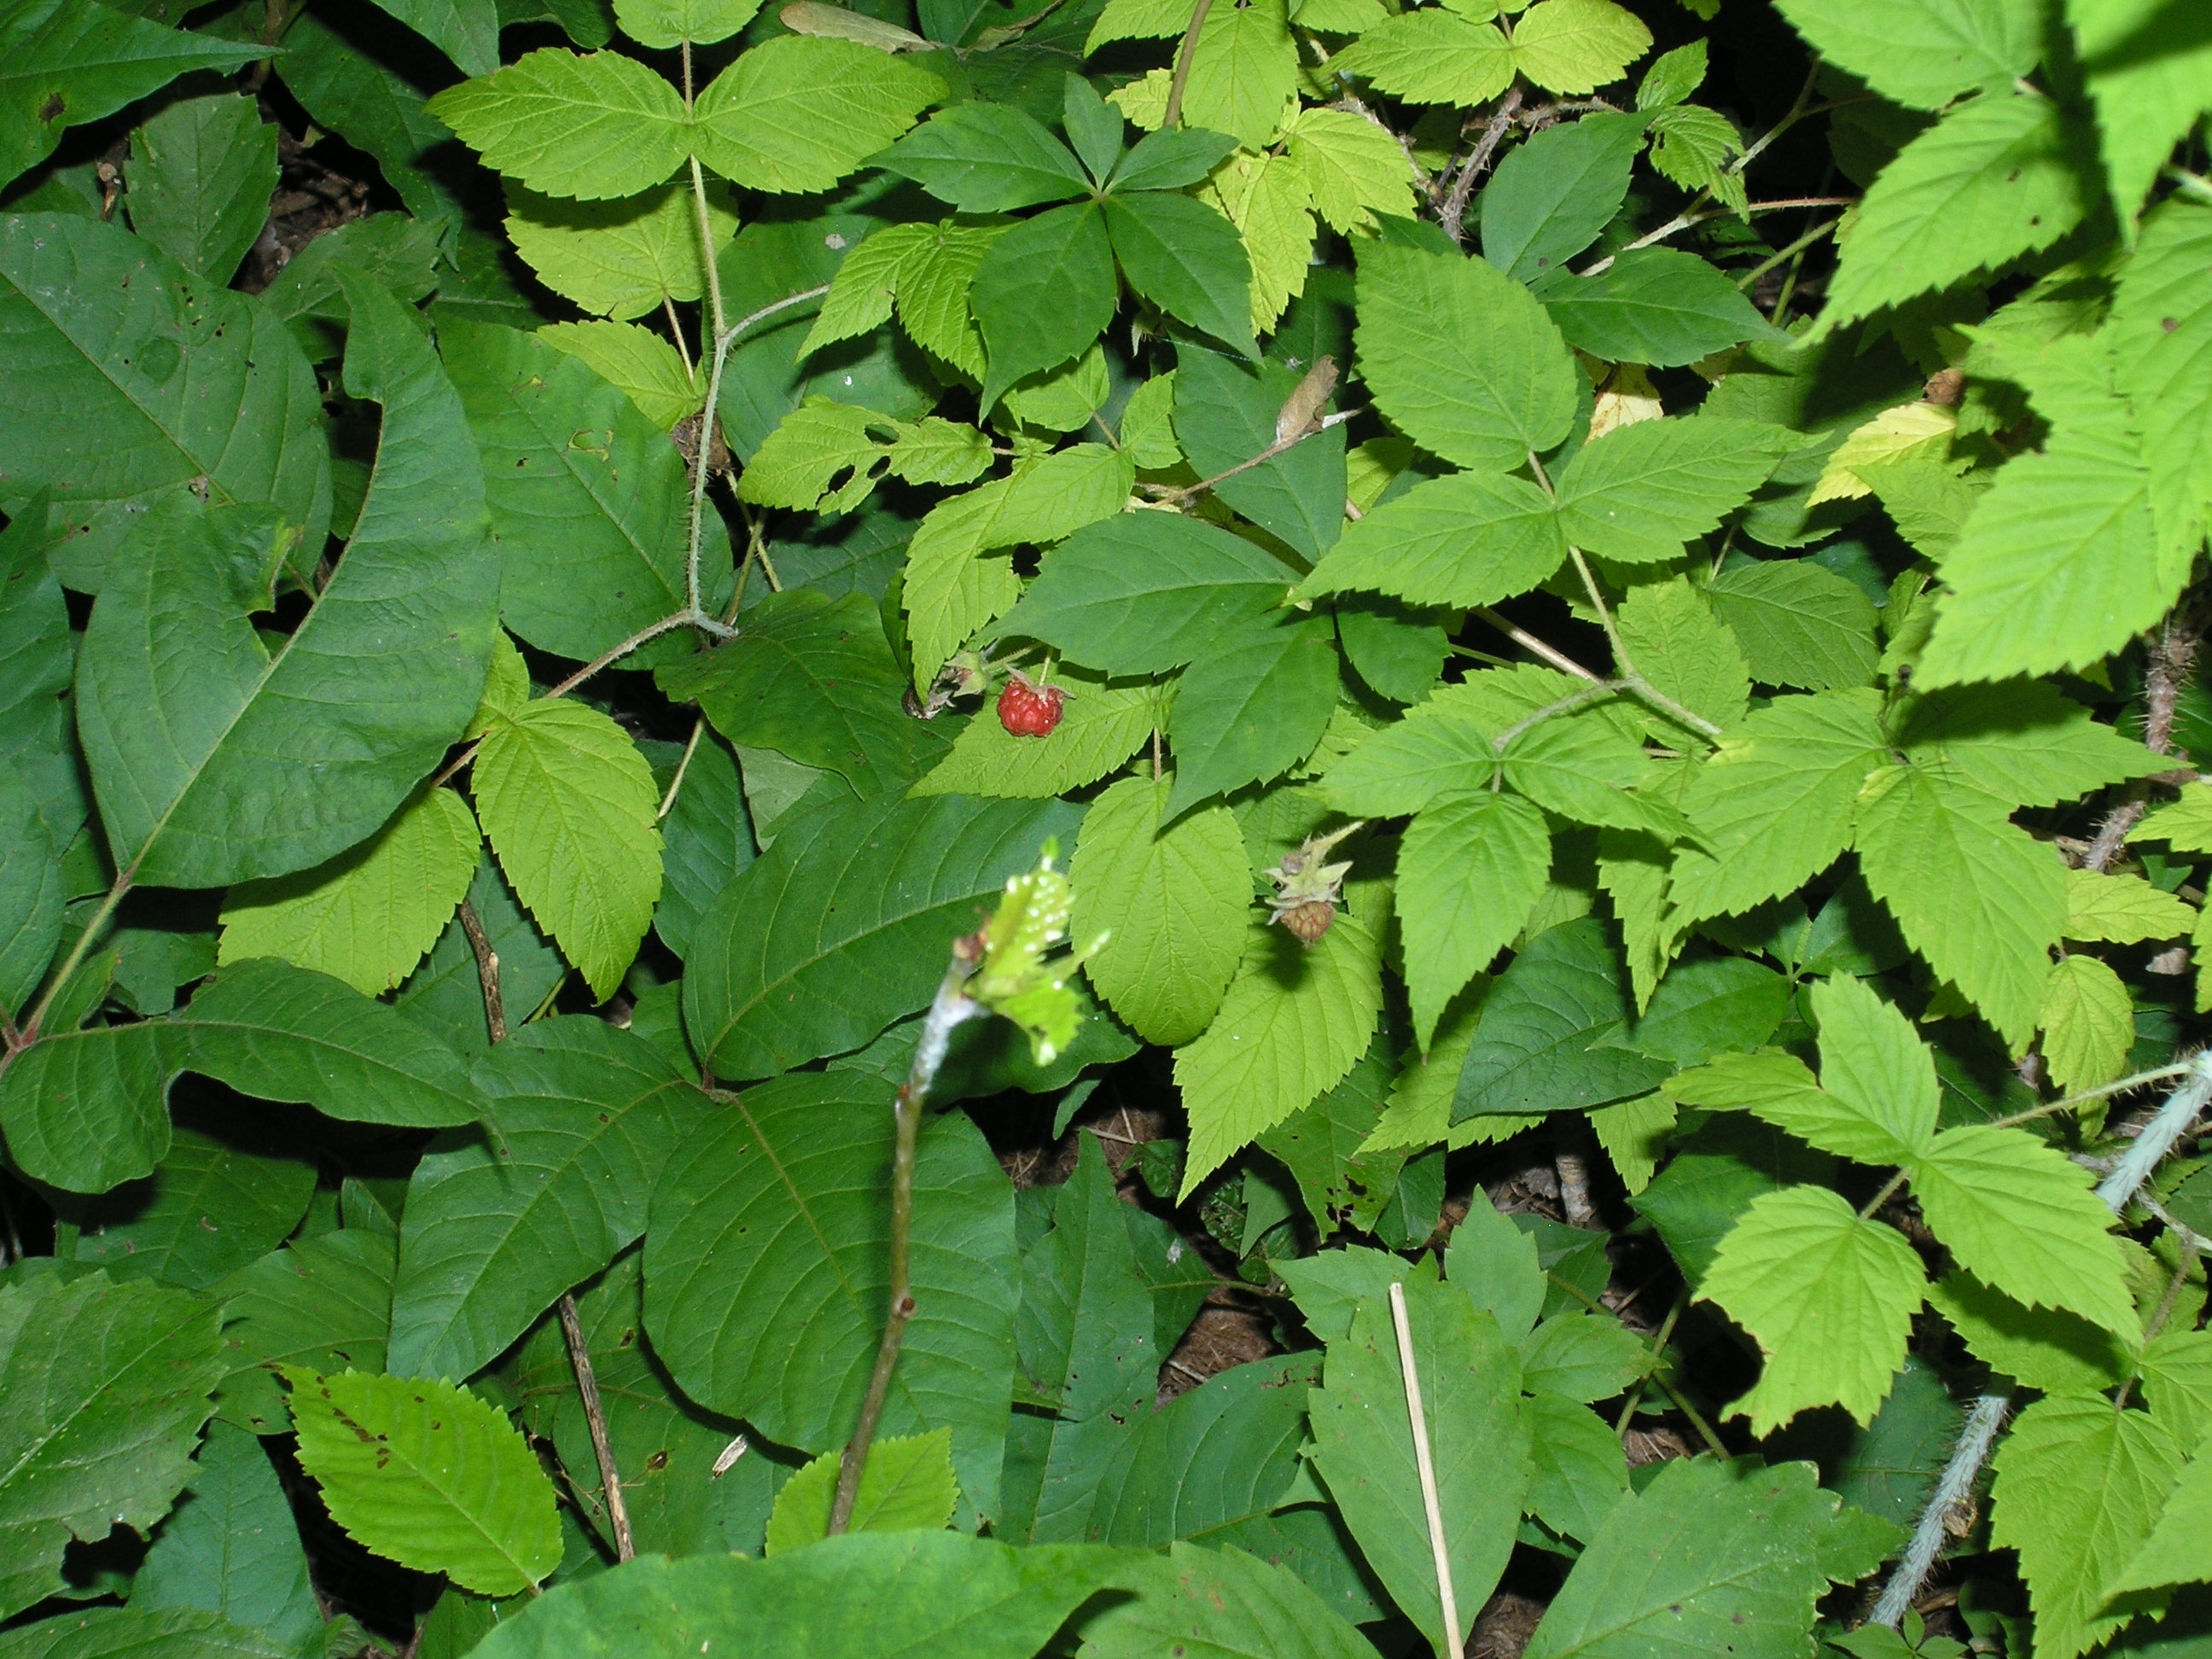 File:Raspberry And Poison Ivy Leaves.JPG - Wikimedia Commons on 5 leaf house plant, 3 leaf plant identification, 8 leaf house plant, 3 leaf outdoor plant,